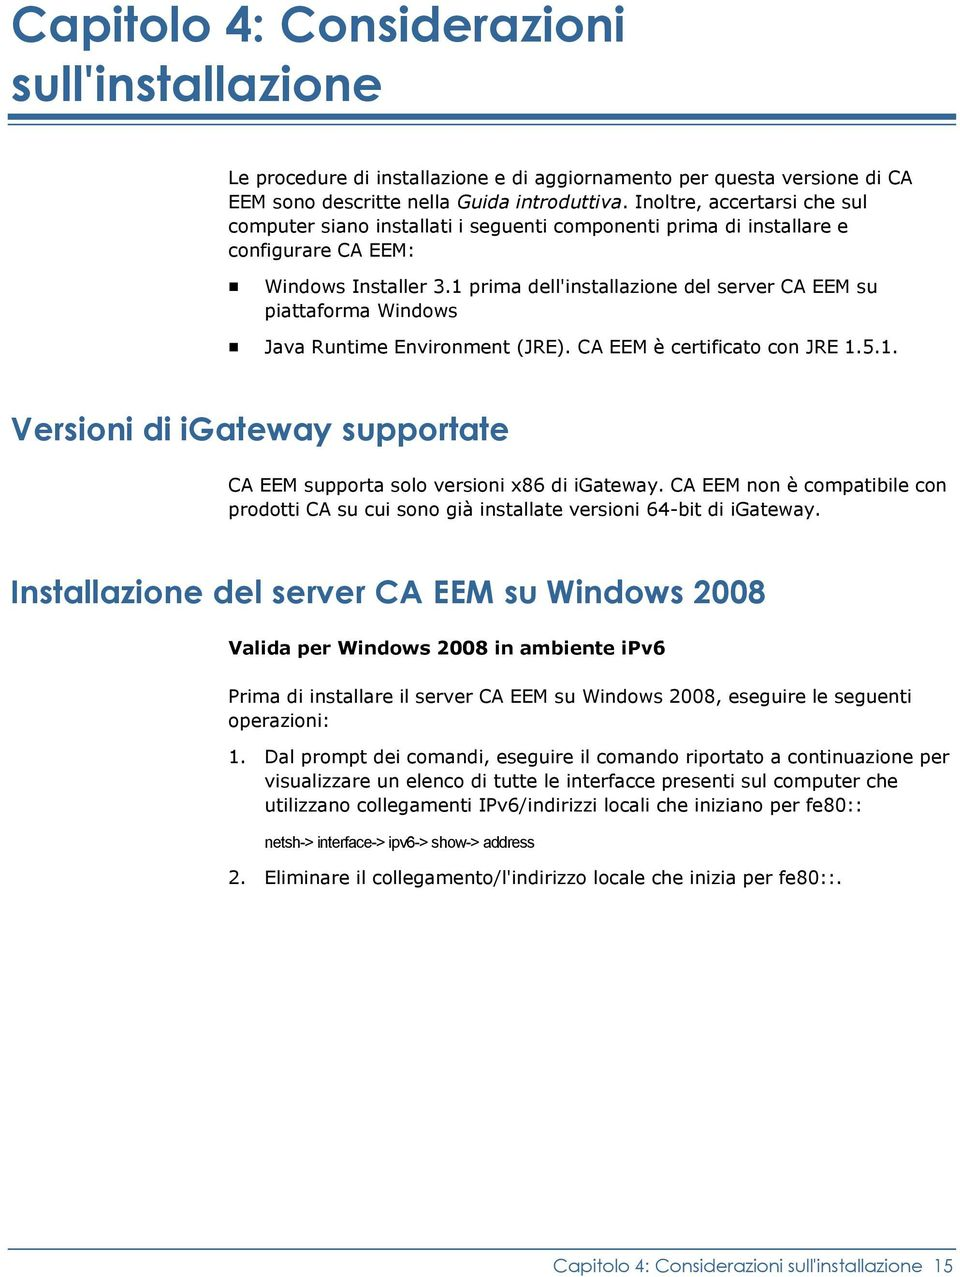 1 prima dell'installazione del server CA EEM su piattaforma Windows Java Runtime Environment (JRE). CA EEM è certificato con JRE 1.5.1. Versioni di igateway supportate CA EEM supporta solo versioni x86 di igateway.